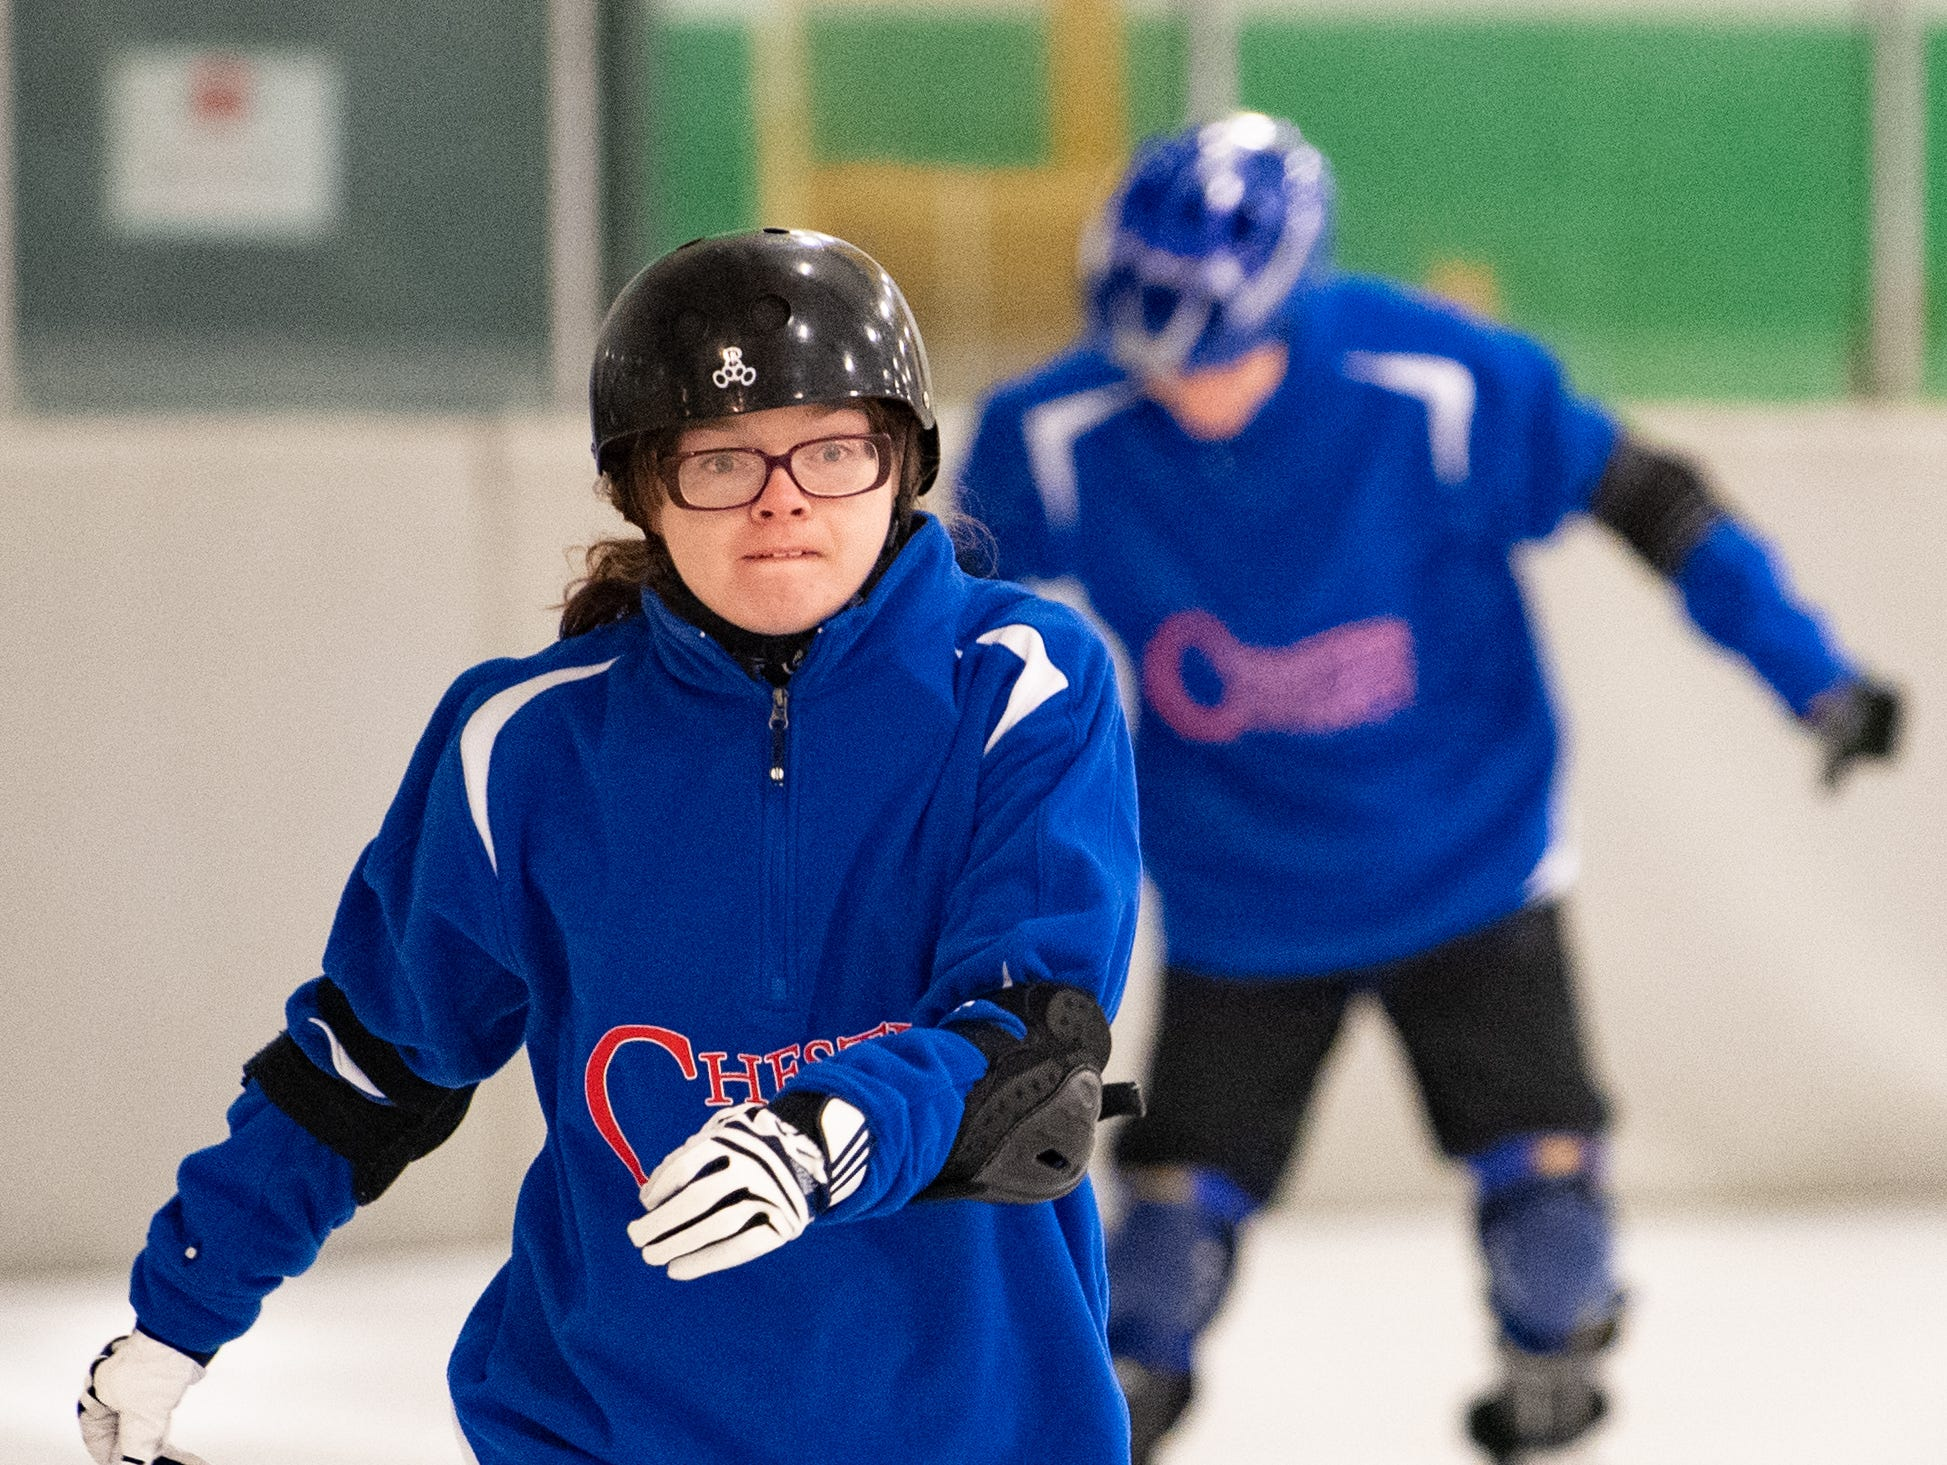 Both the speed and figure skating competitions are being held at the York Ice Arena during the Special Olympics Pennsylvania Indoor Winter Games, March 2, 2019.